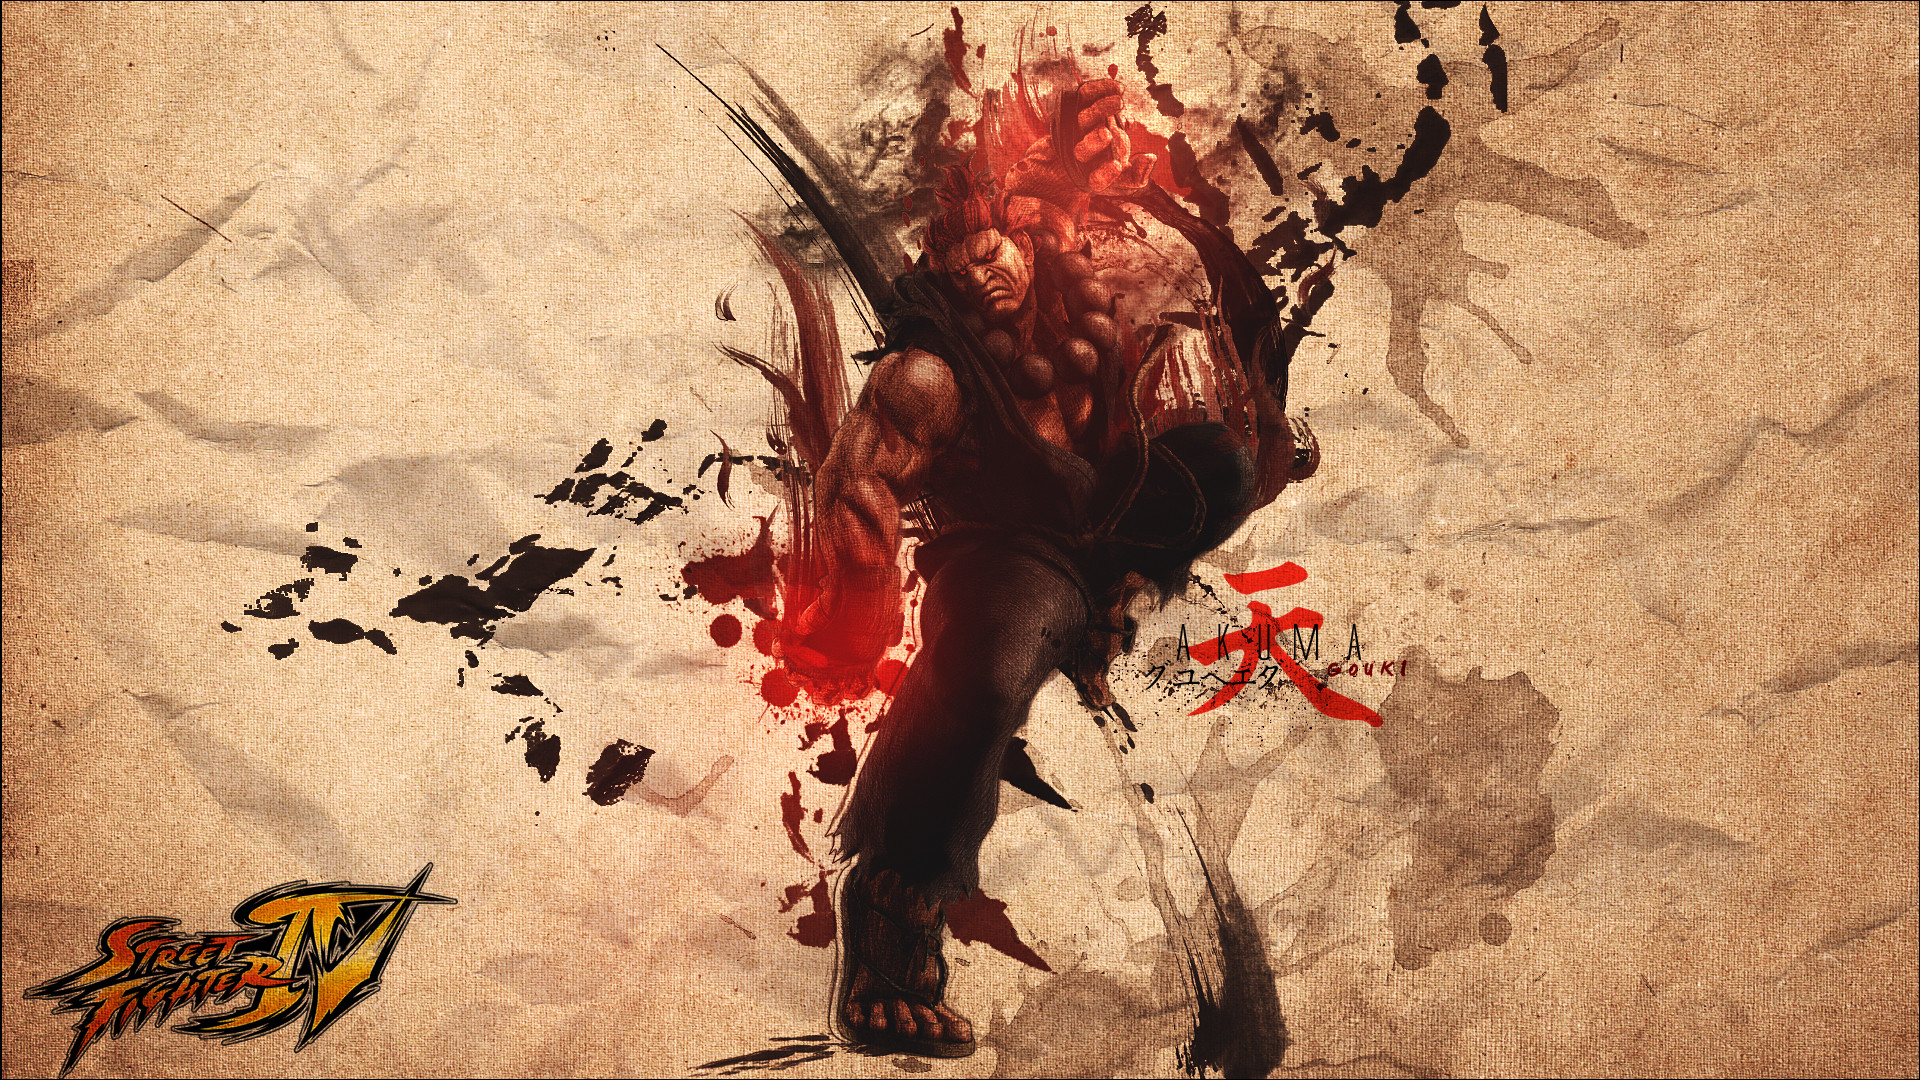 Res: 1920x1080, hd akuma street fighter background amazing images cool windows wallpapers  free images desktop backgrounds high quality